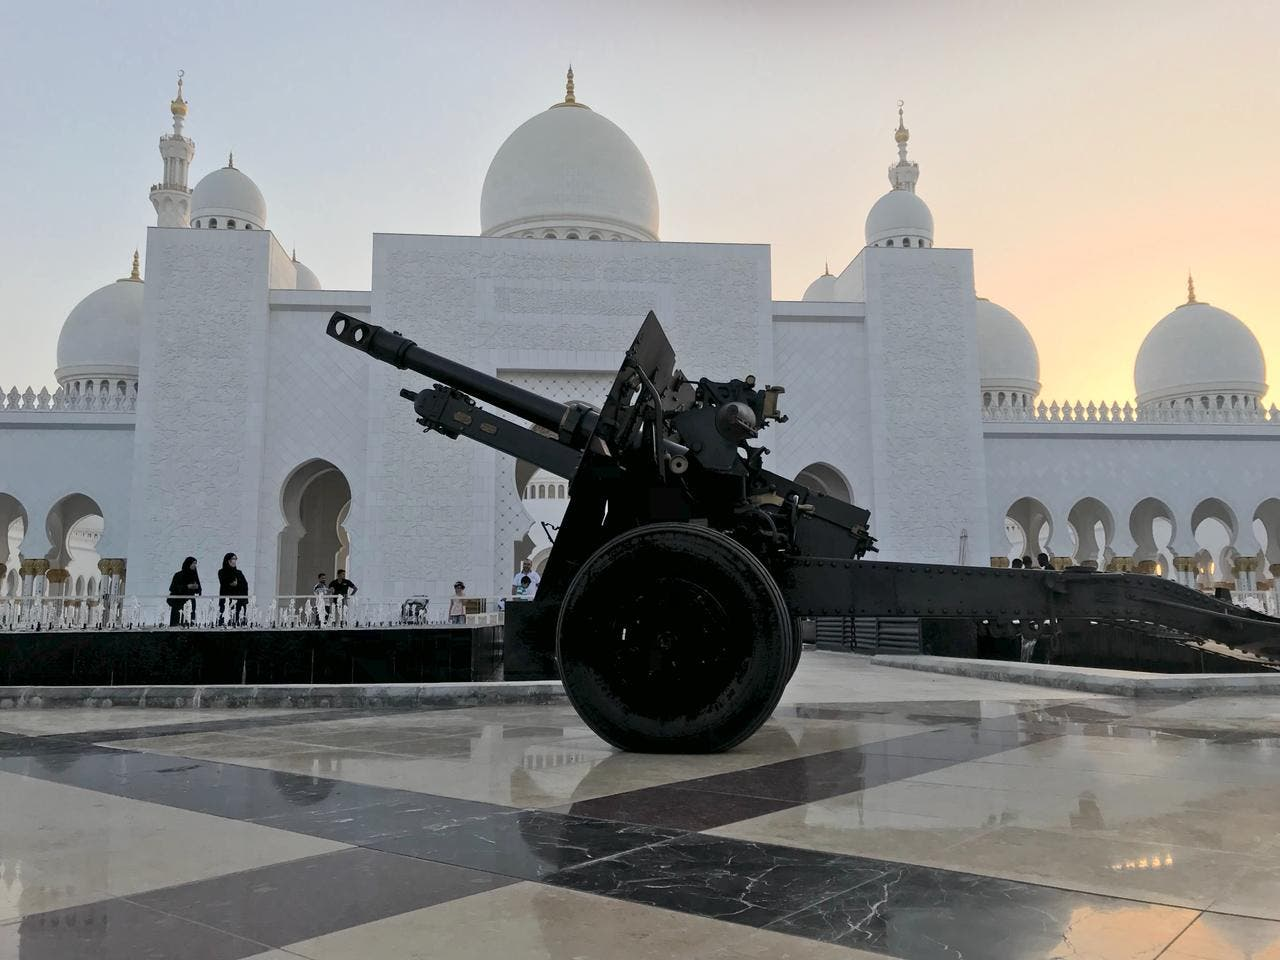 Daily canon firing at the mosque signals the end of fasting. (Supplied)